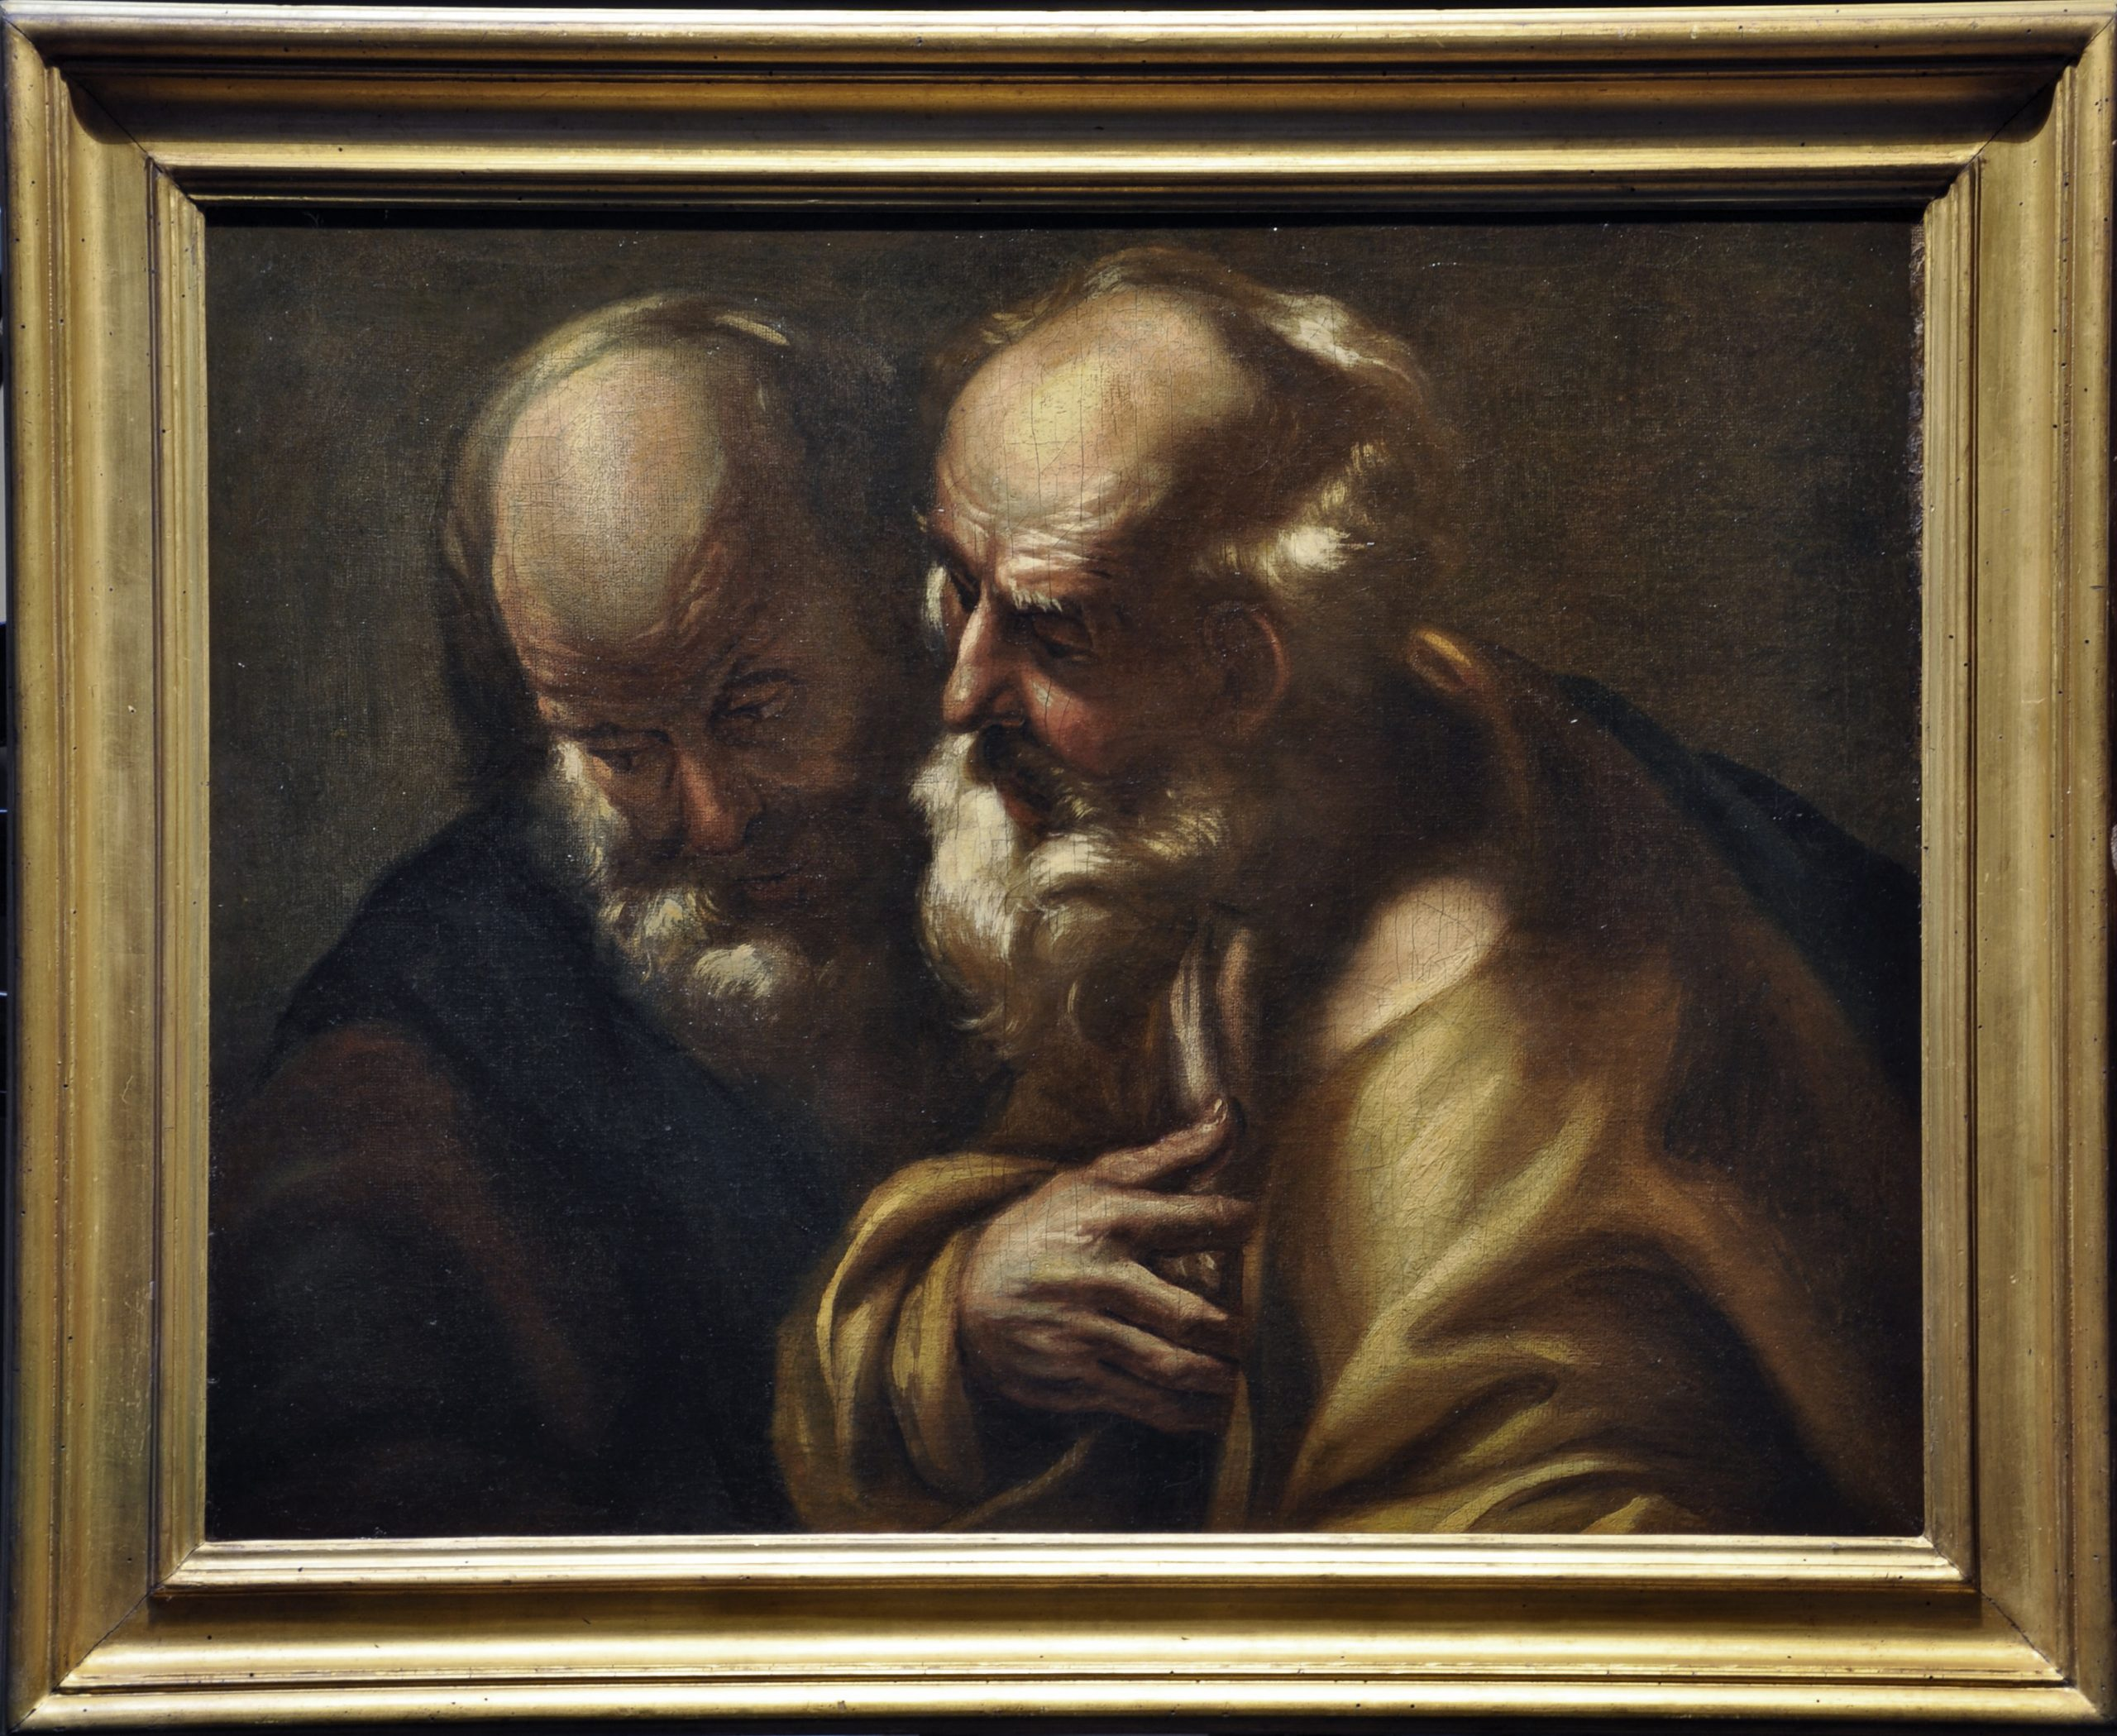 Two men lean in close to one another as if they are whispering.